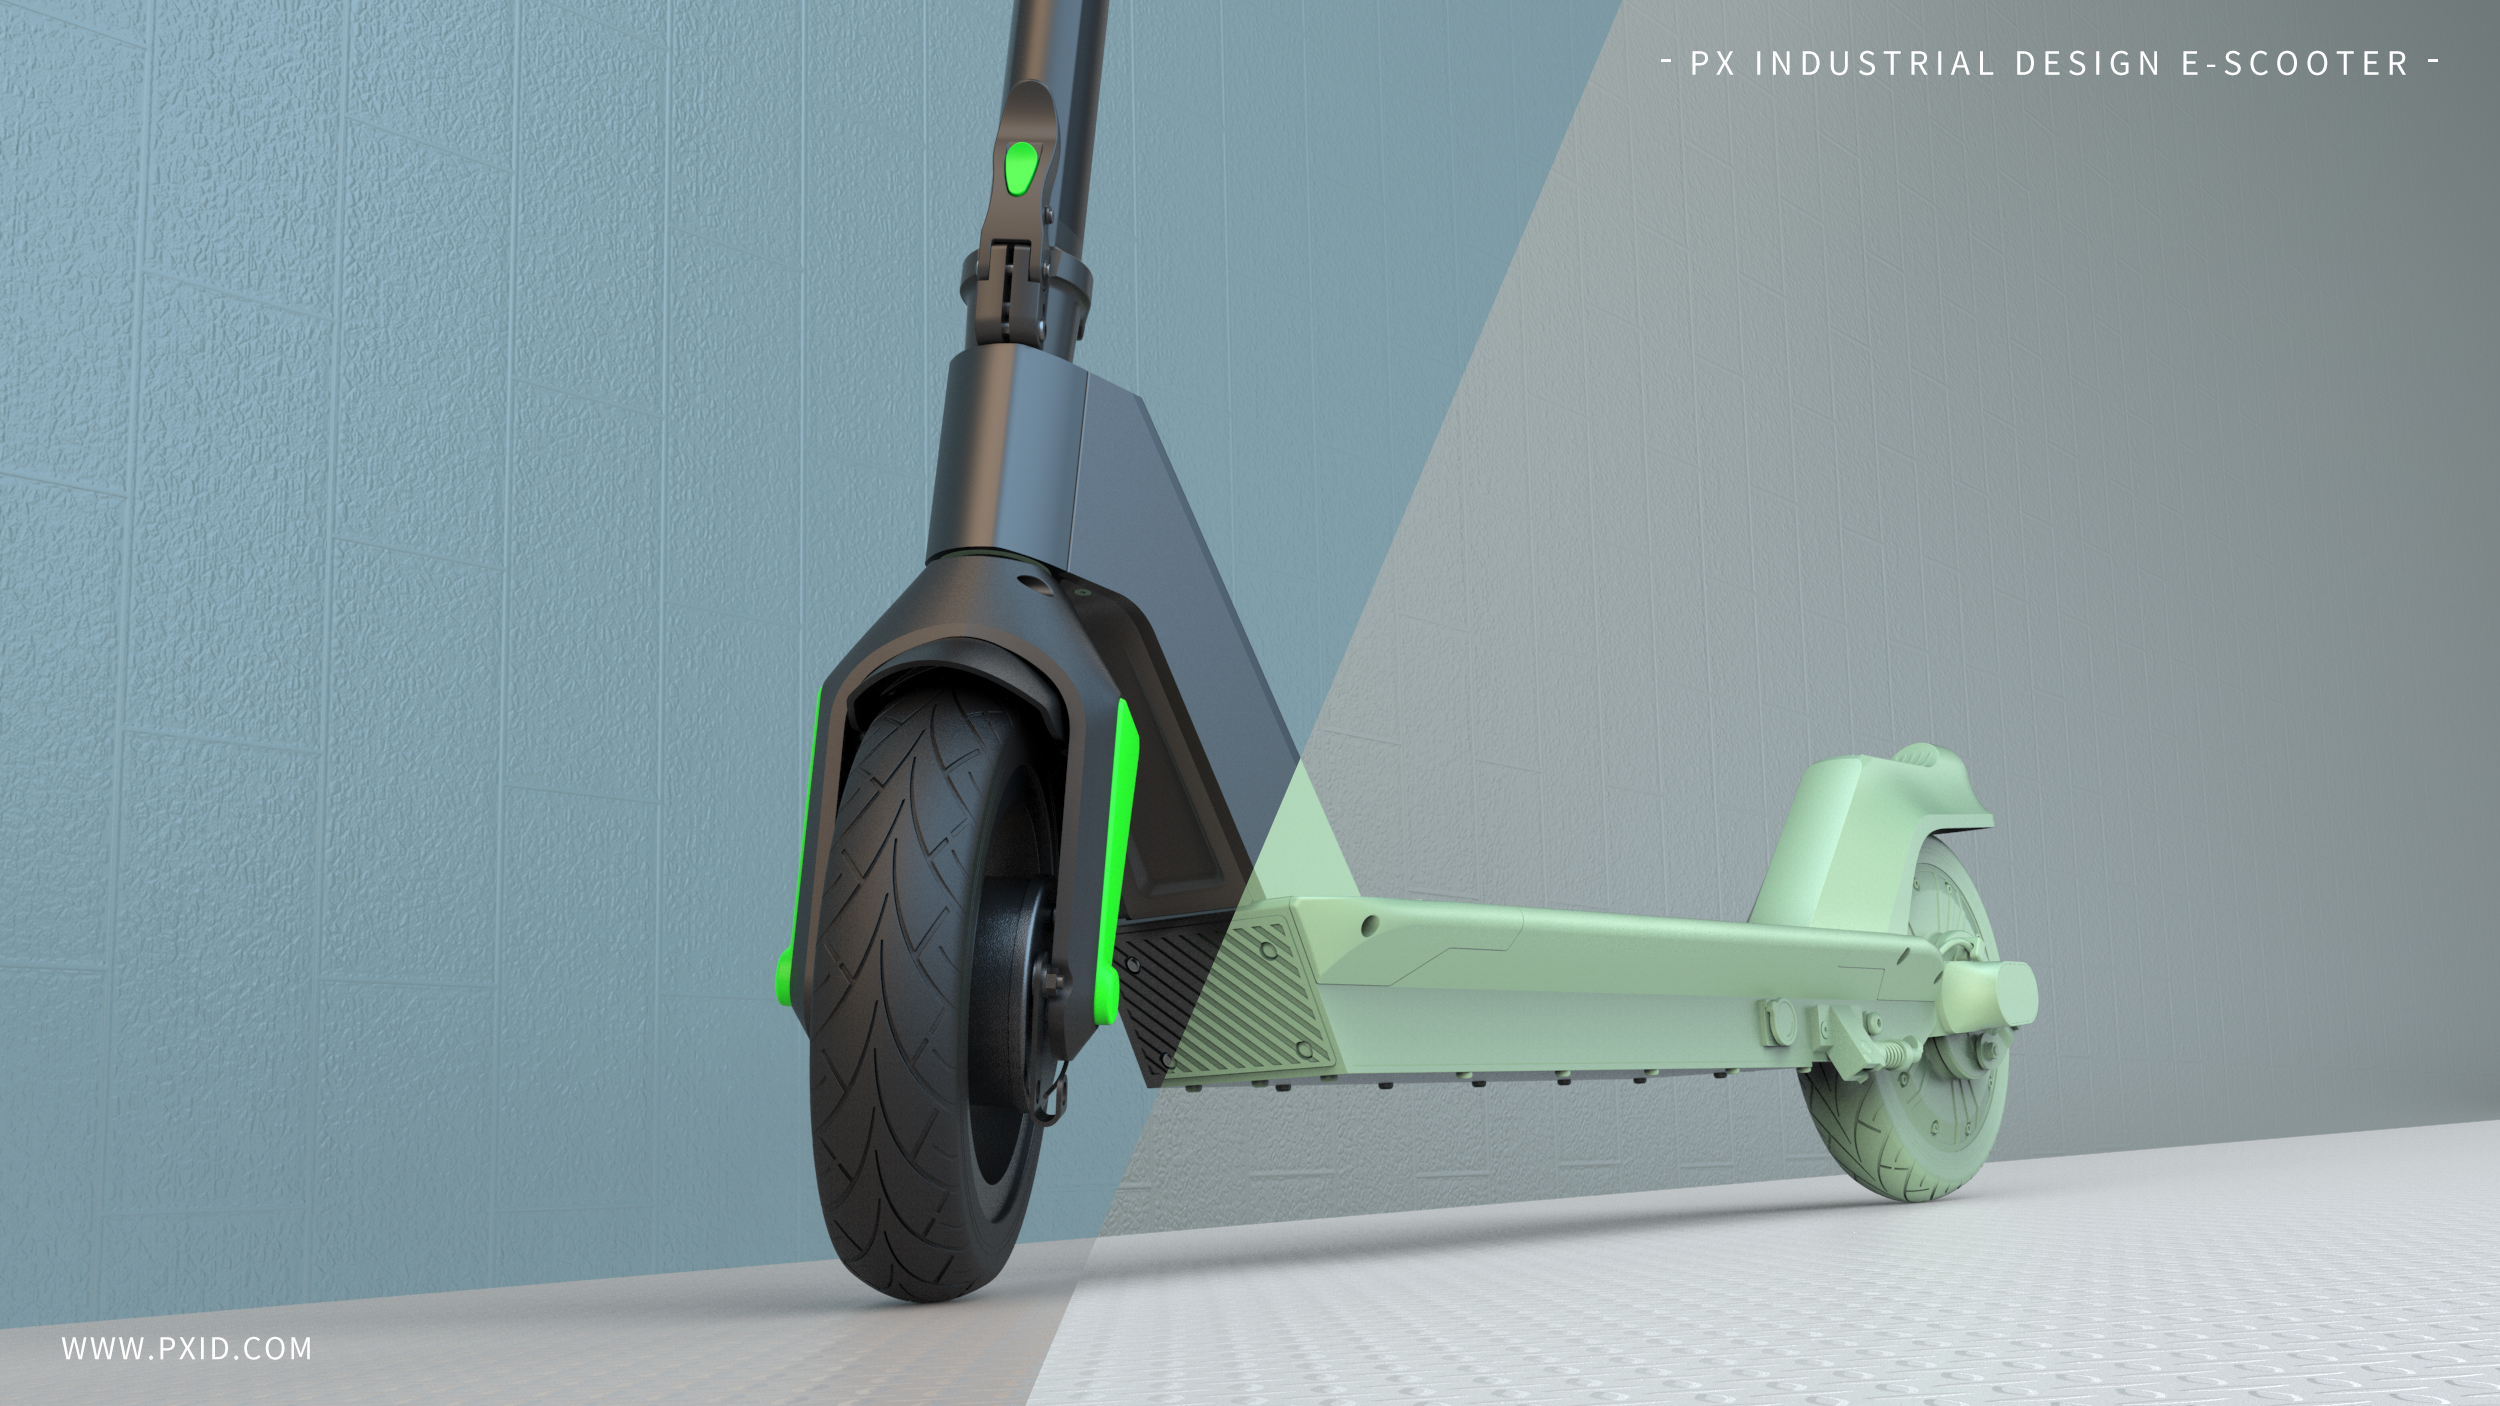 PXID designed e scooter folding electric scooter with removable battery